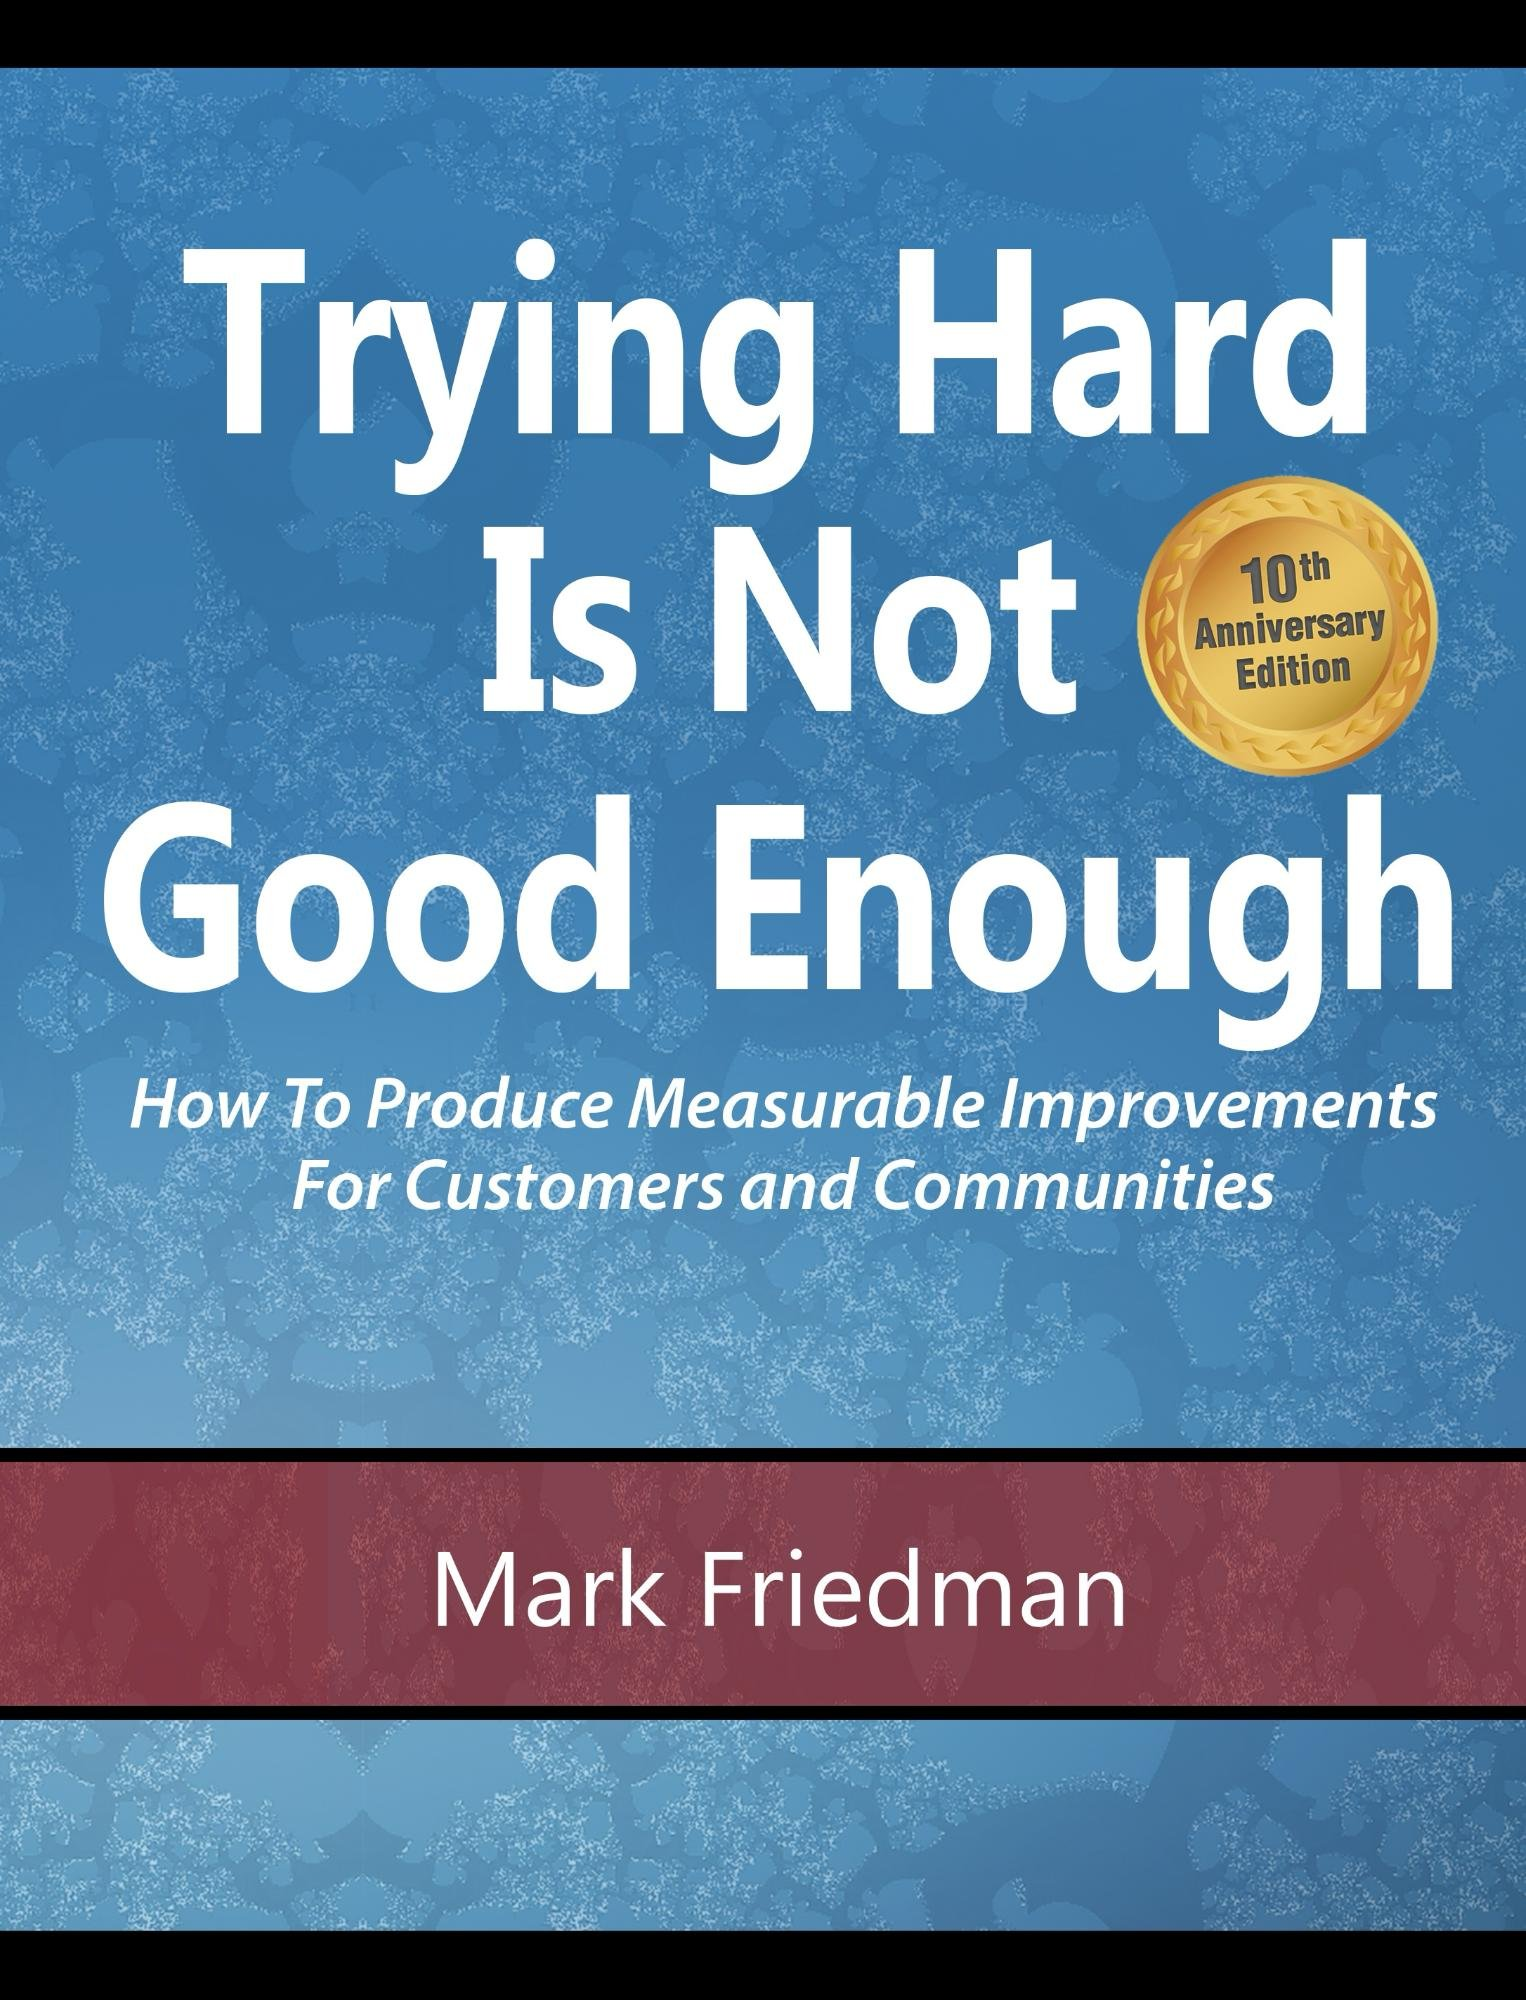 Download Trying Hard Is Not Good Enough 10th Anniversary Edition: How To Produce Measurable Improvements For Customers And Communit... 